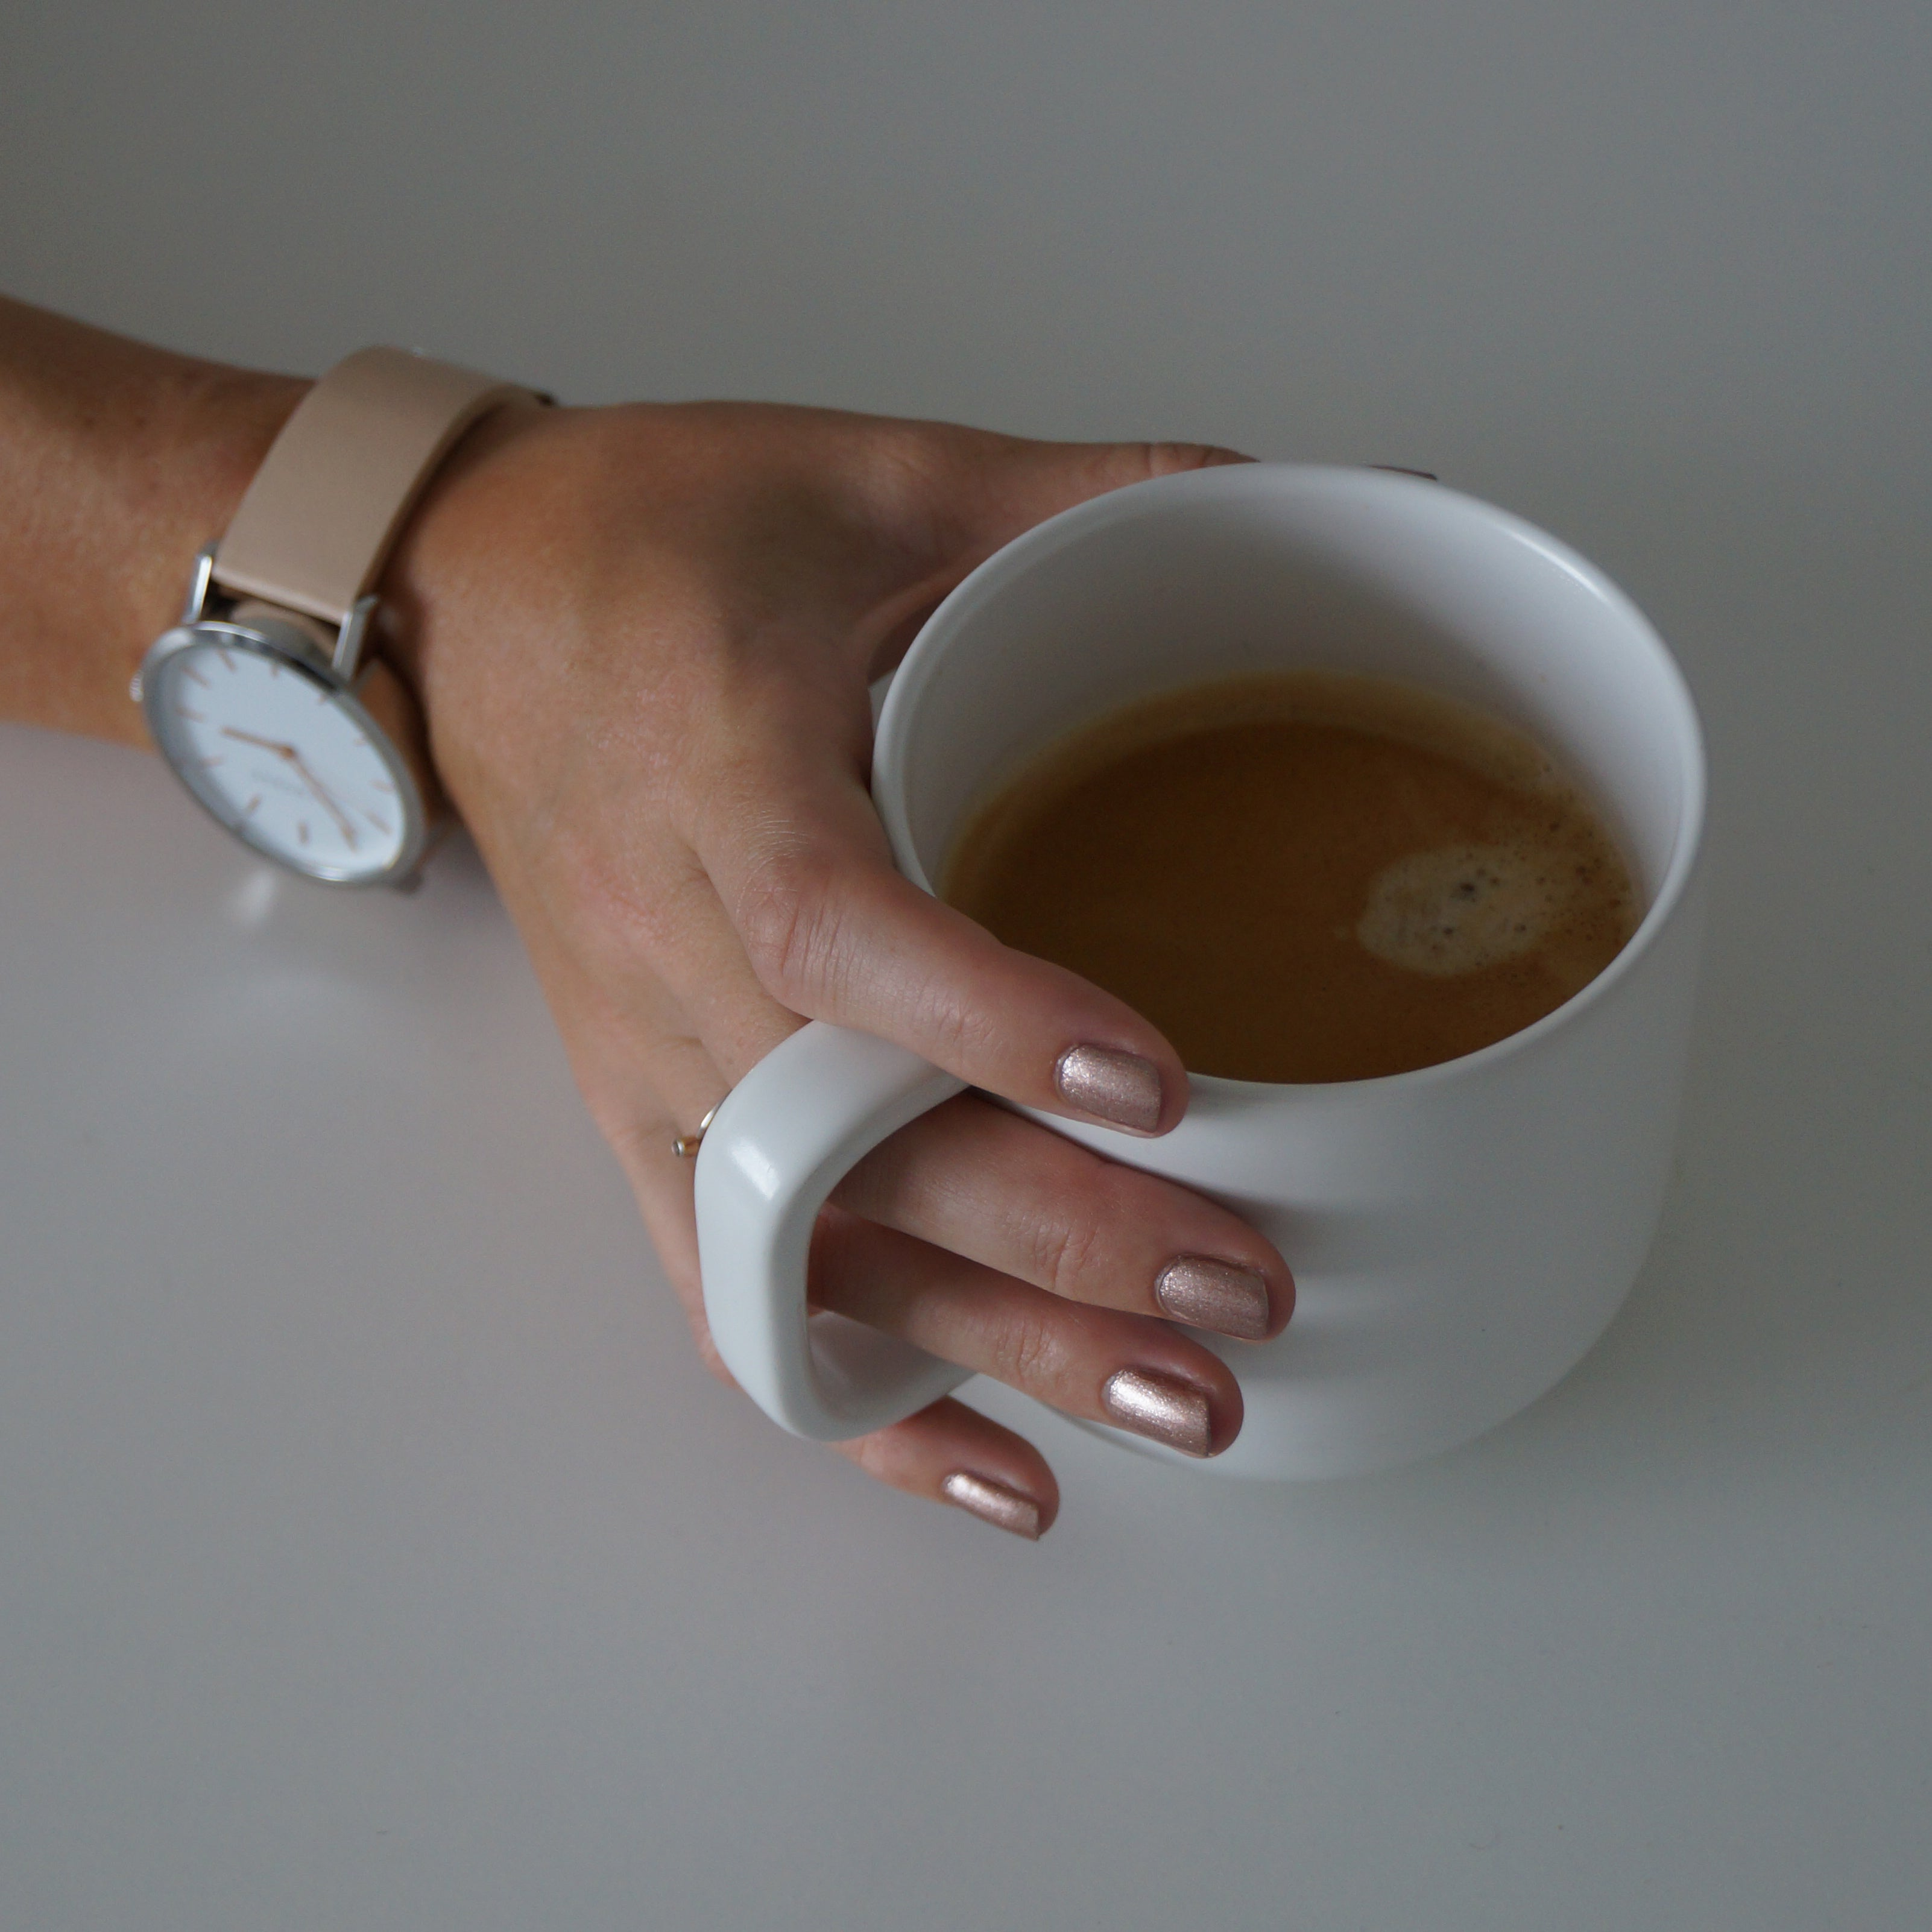 A female hand holding a cup of coffee, wearing Copper Blush nail poilsh - a metallic dark pink colour with gold undertones